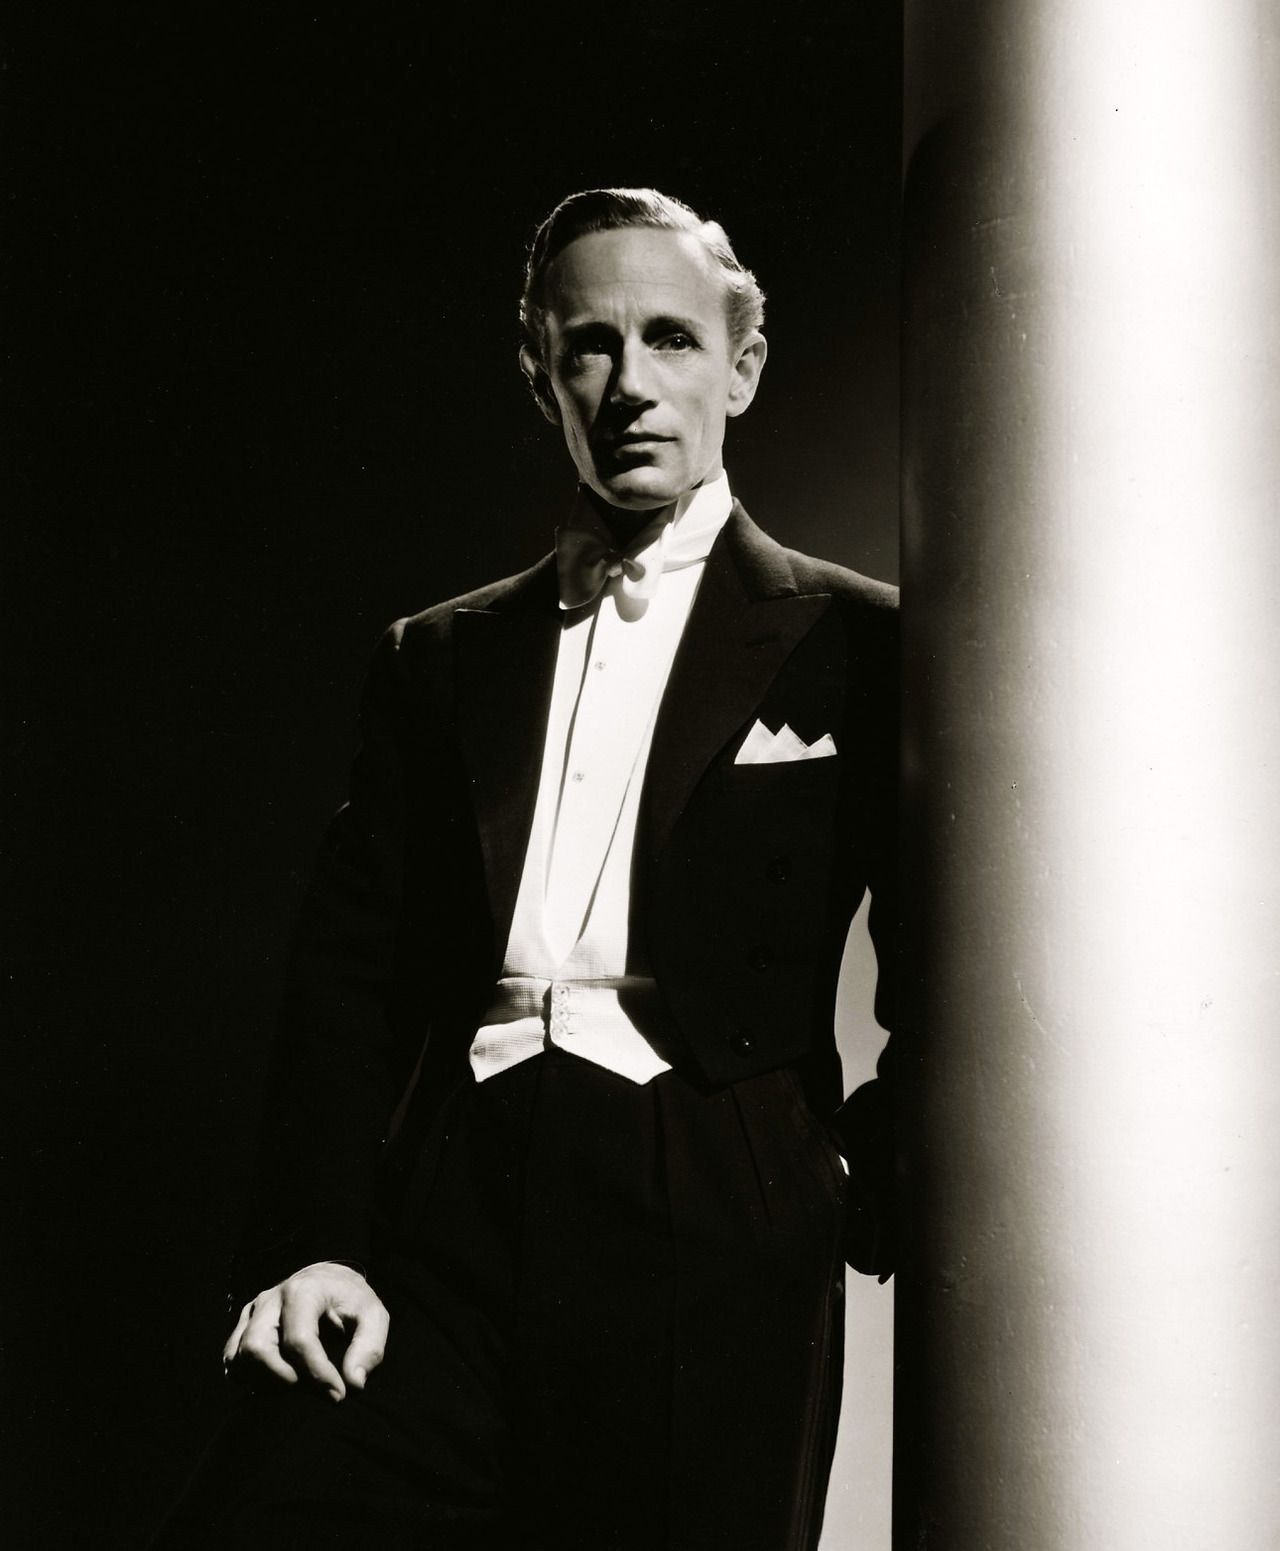 leslie howard gayleslie howard forever, leslie howard actor, leslie howard yoga, leslie howard jumping, leslie howard height, leslie howard pianist, leslie howard vivien leigh, leslie howard, leslie howard bogart, leslie howard piano, leslie howard imdb, leslie howard liszt, leslie howard gone with the wind, leslie howard the man who gave a damn, leslie howard romeo and juliet, leslie howard liszt complete, leslie howard equestrian, leslie howard pianista, leslie howard gay, leslie howard attore